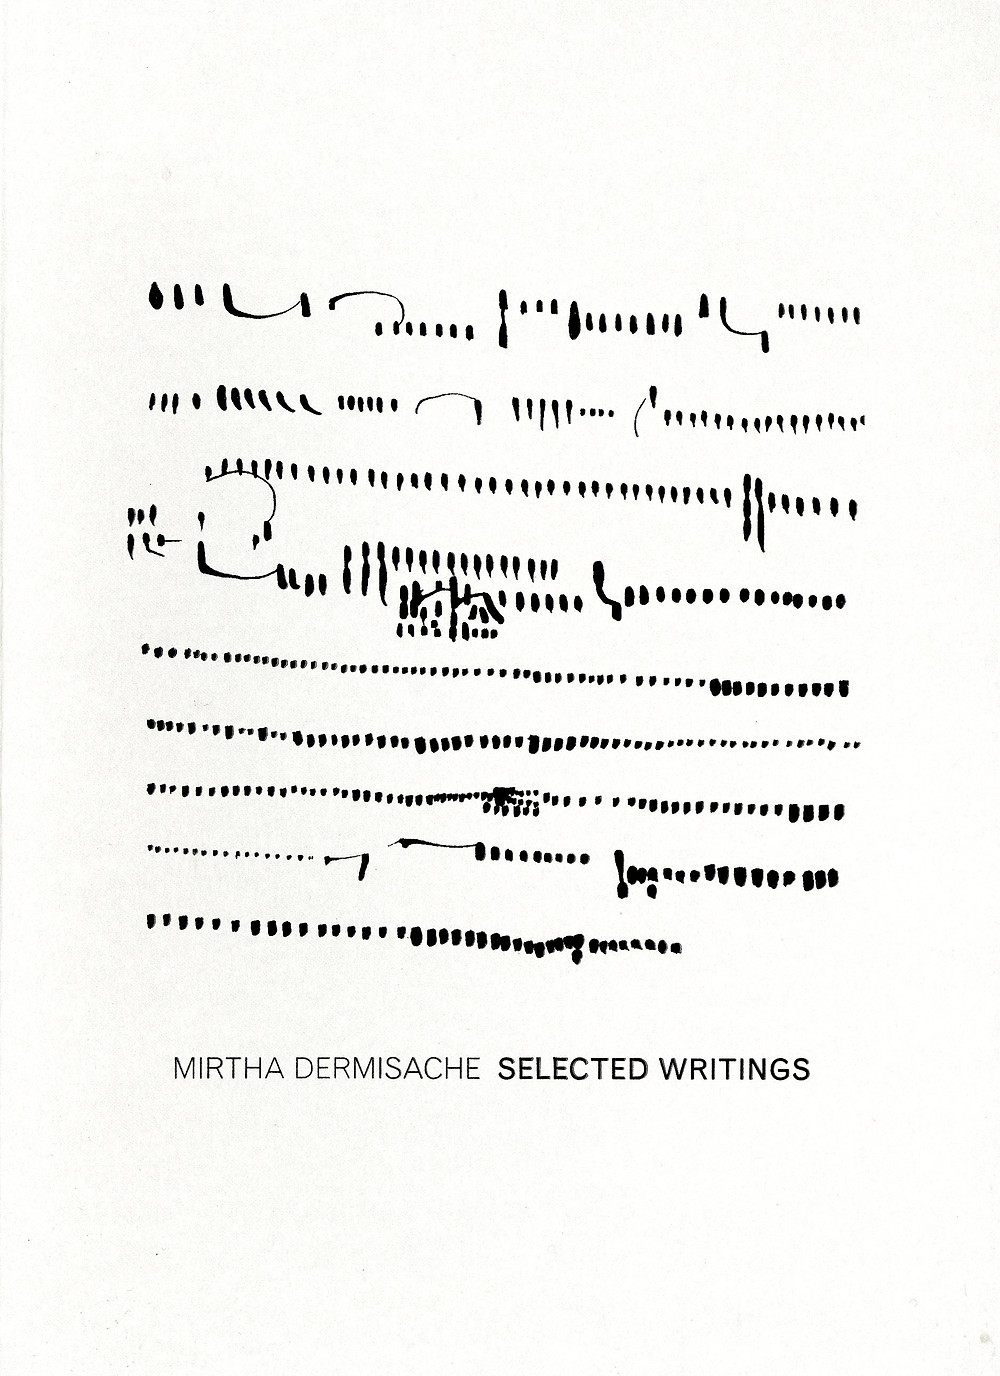 Mirtha Dermisache's Selected Writings